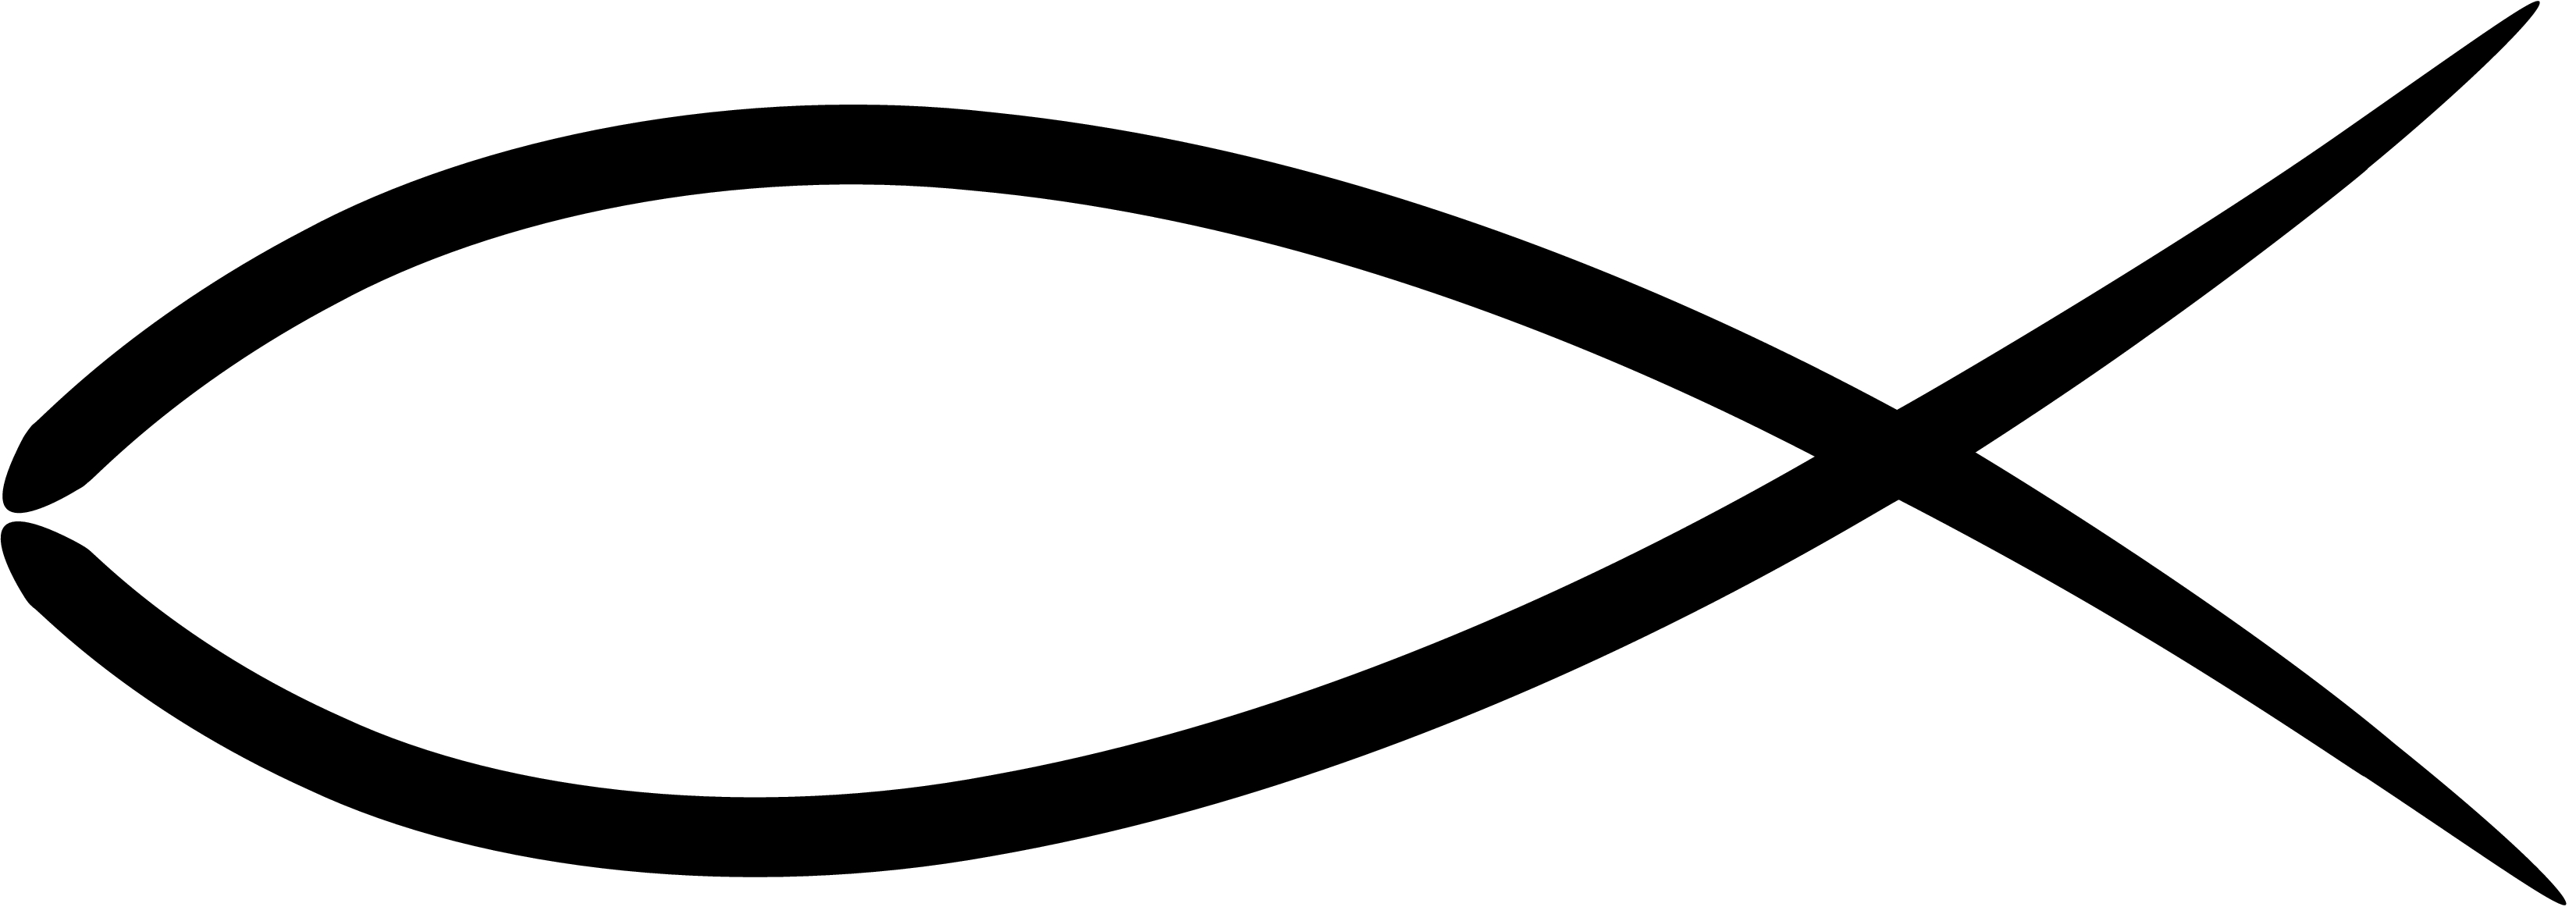 Free Ichthys Fish Cliparts, Download Free Clip Art, Free.